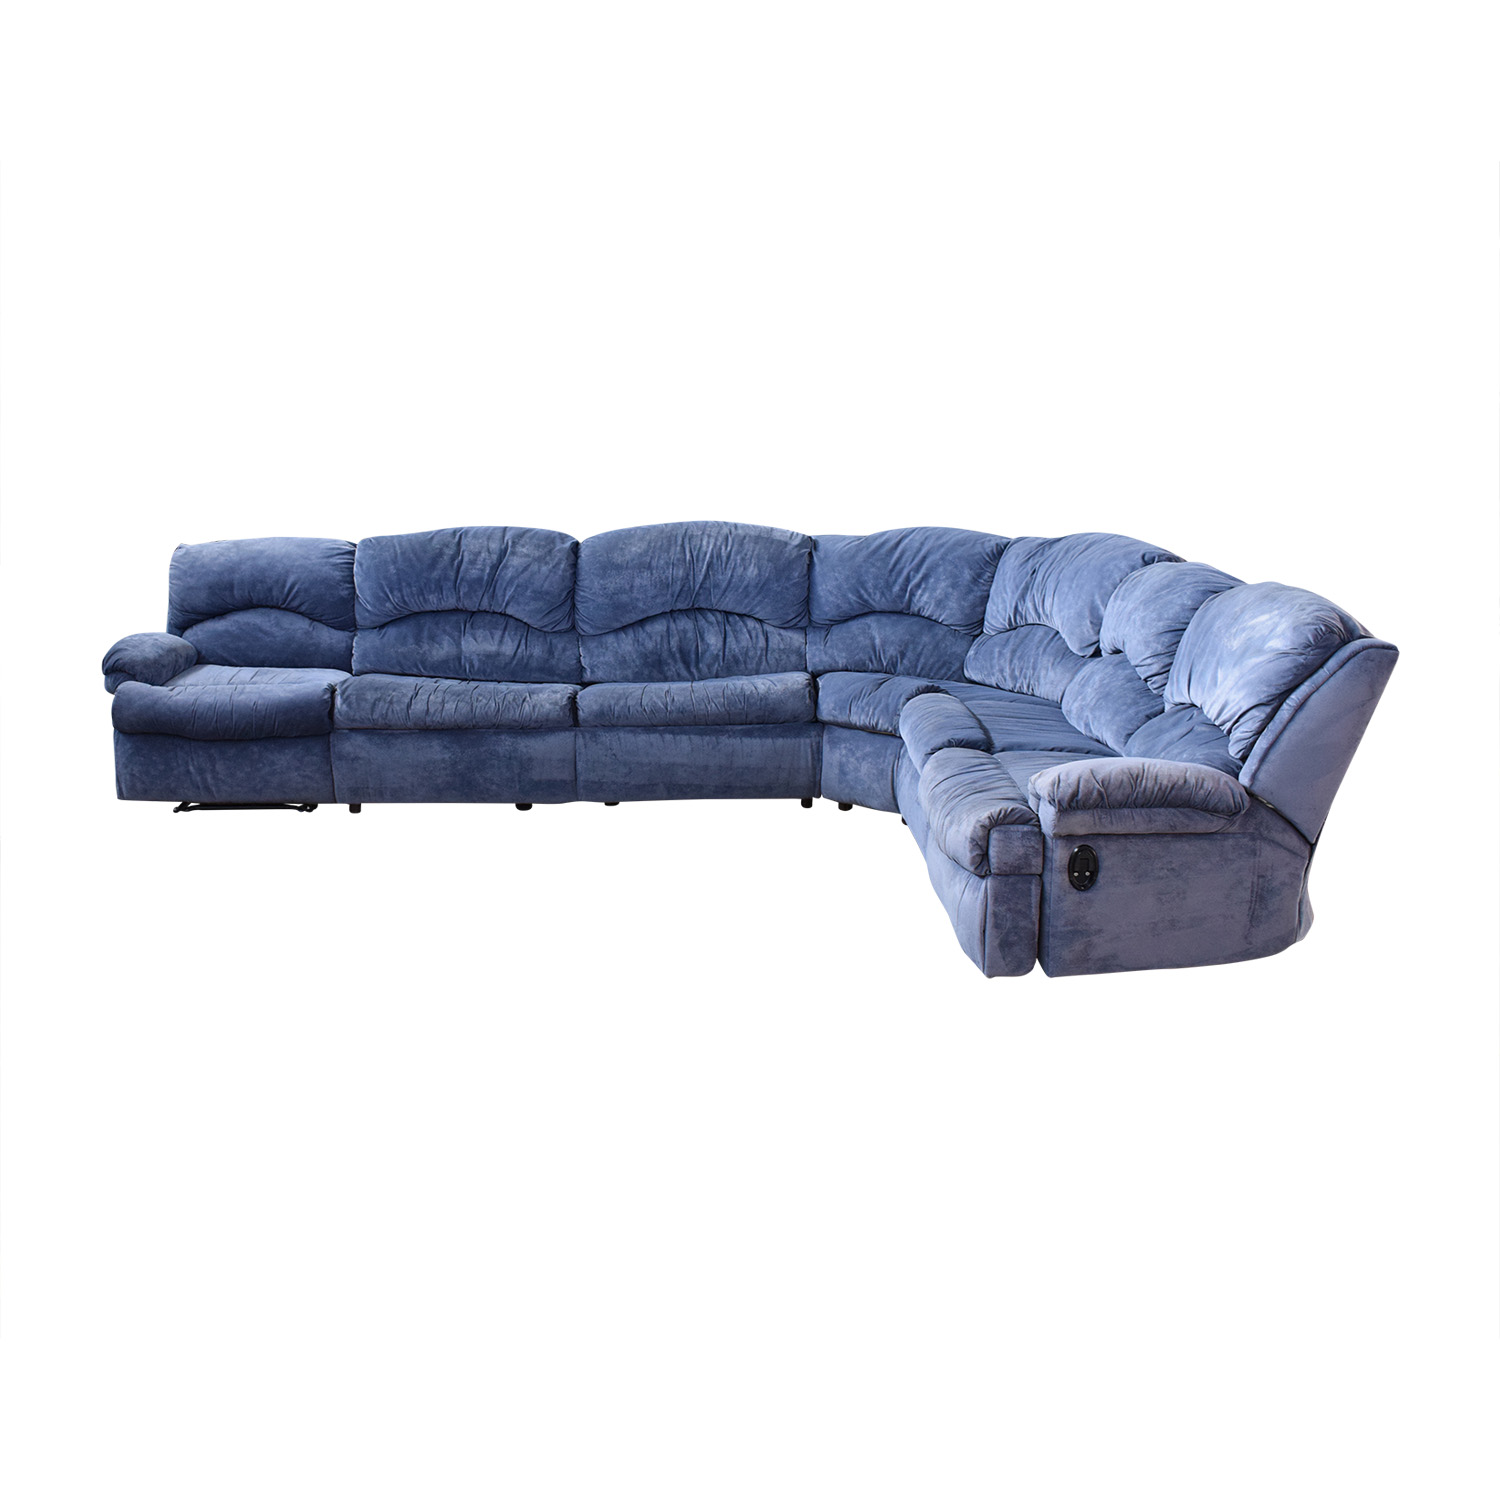 Raymour & Flanigan Raymour & Flanigan Sectional Sofa with Sleeper pa